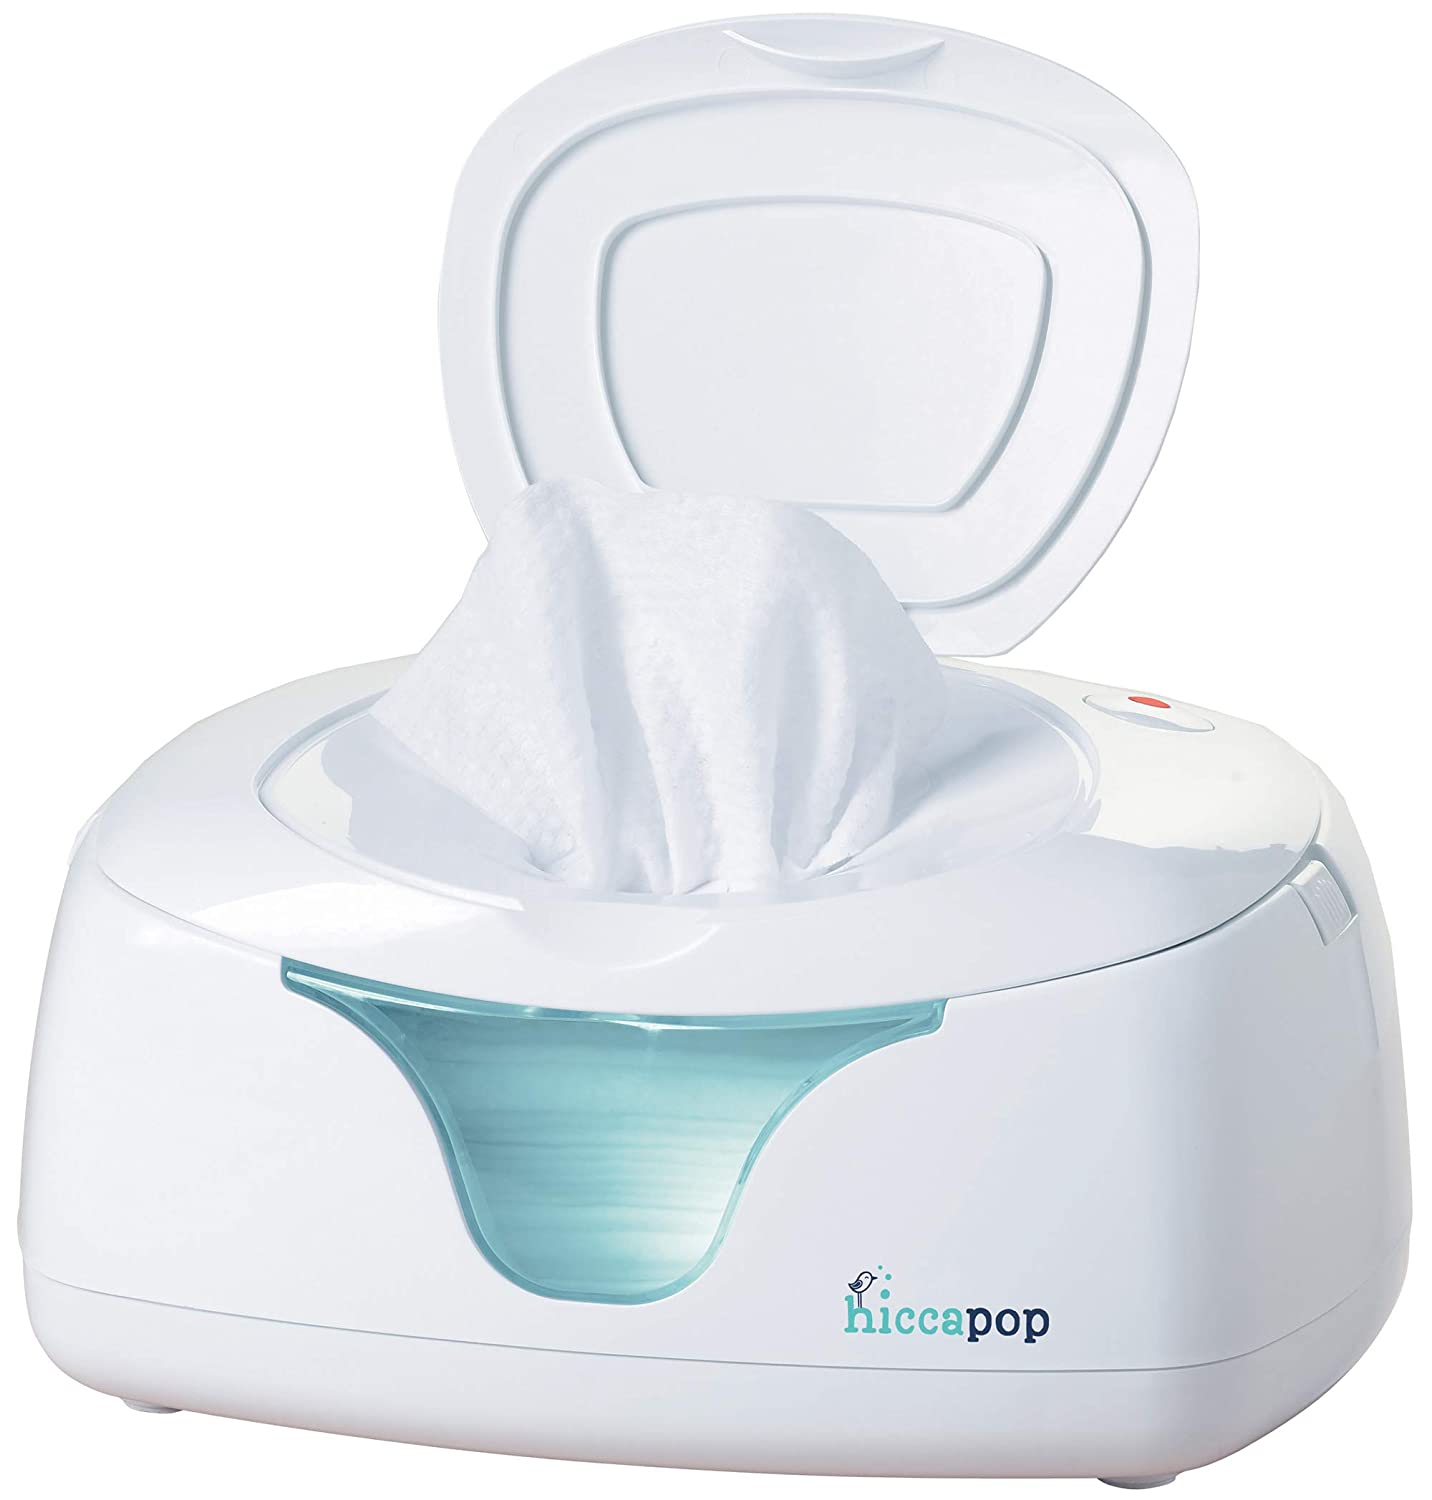 Baby Wipe Warmer /& Wipes Dispenser Sleek Diaper Wipes Holder for Boys and Girls,Top and Quickly Overall Heating,Super Silent Perfect Wipe Temperature